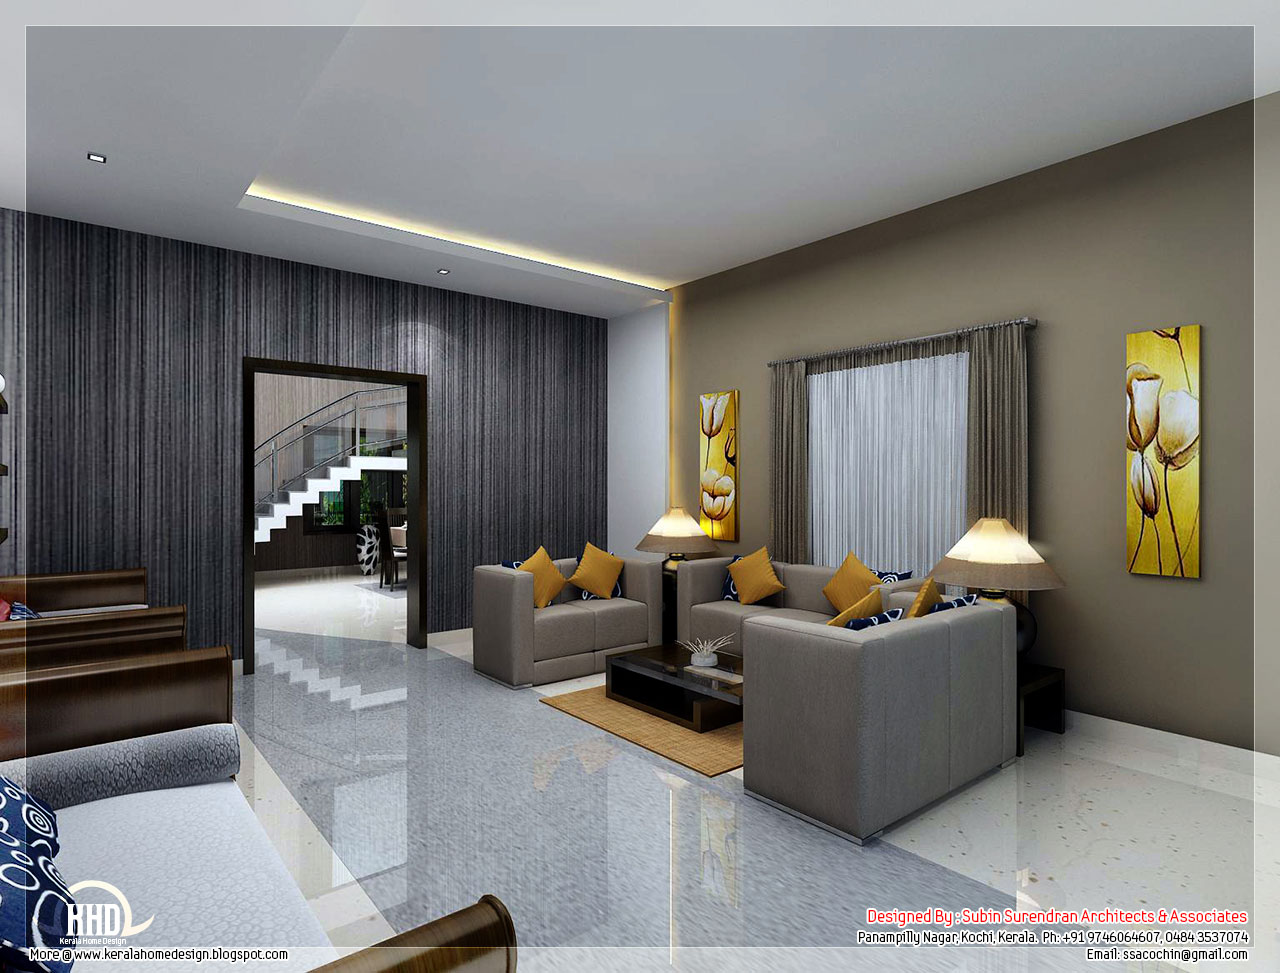 Awesome 3d interior renderings kerala home design and for Kerala home interior design ideas